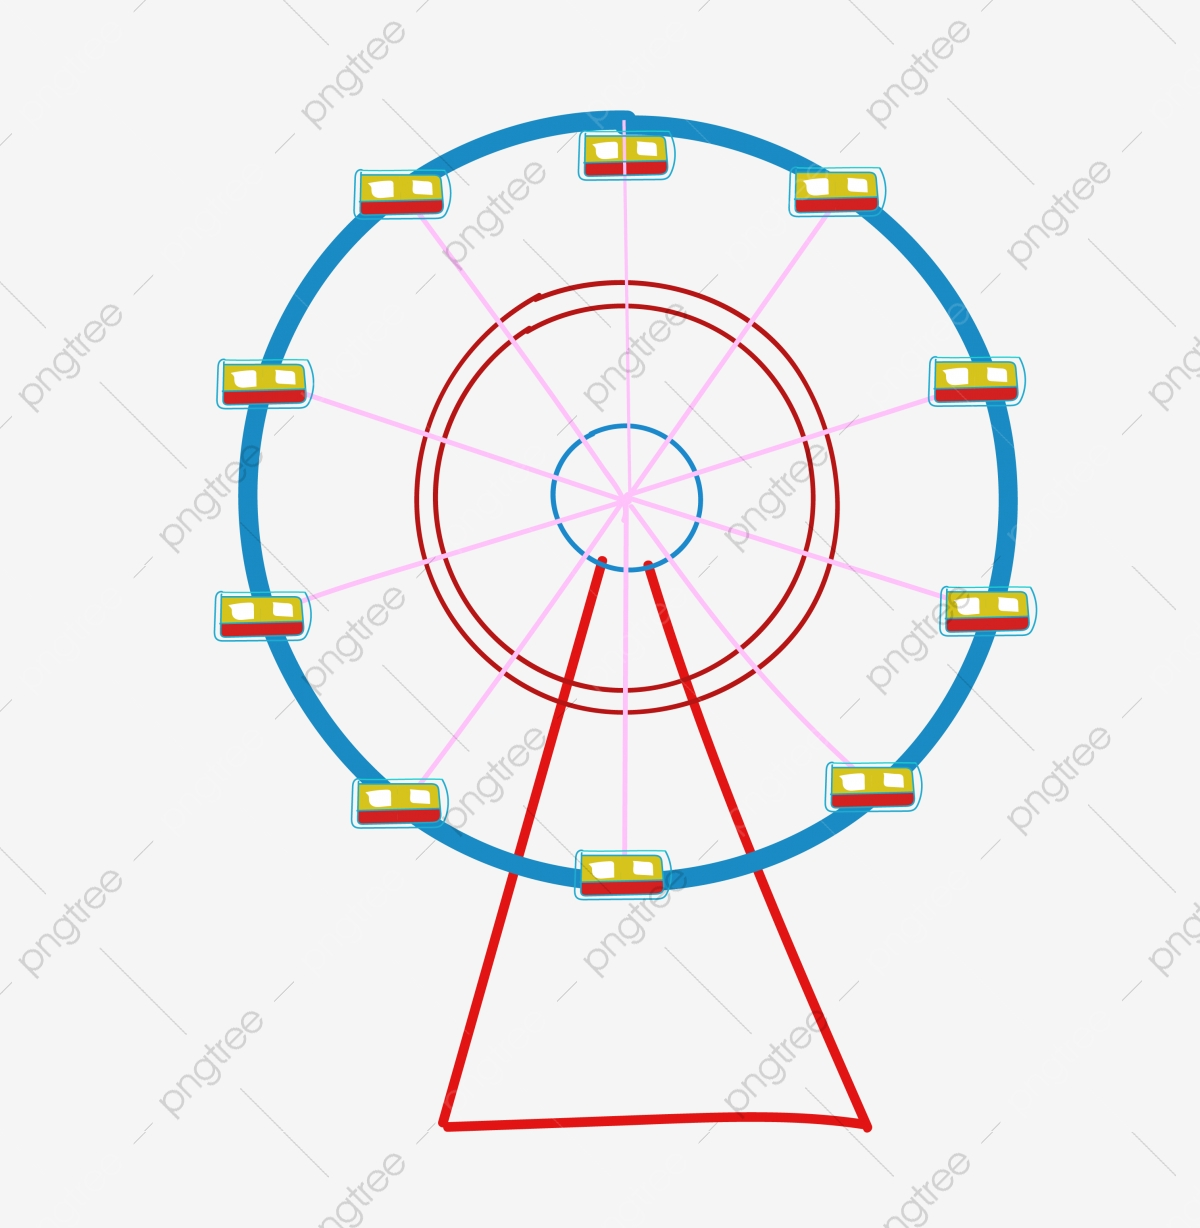 Cartoon Hand Painted Ferris Wheel Playground Simple Line Lovely Png And Vector With Transparent Background For Free Download